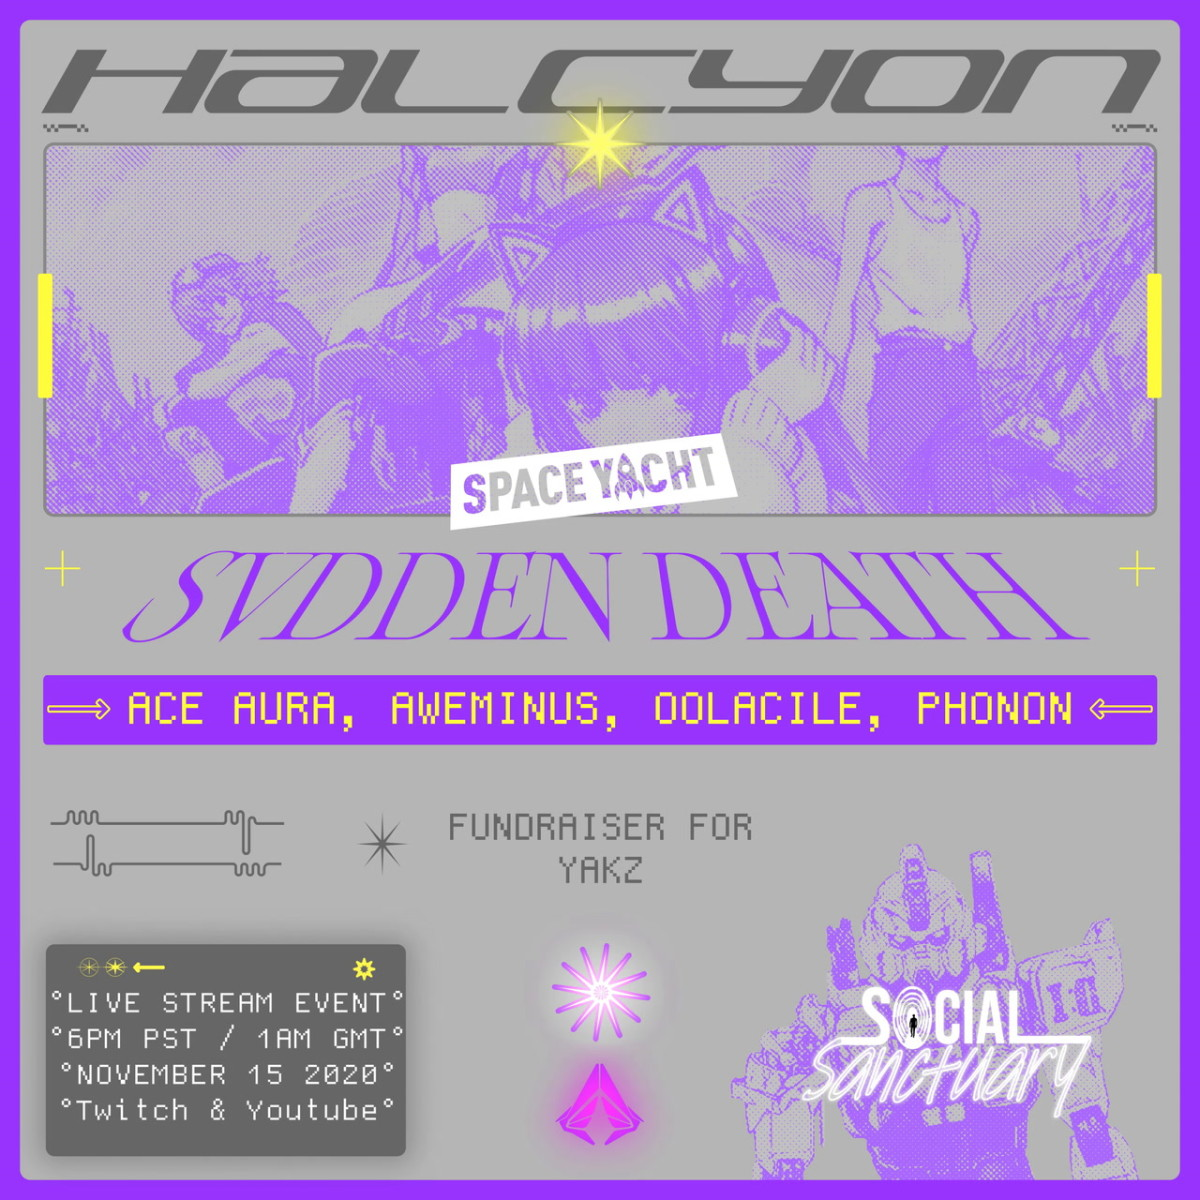 Halcyon Space Yacht NEW DATE